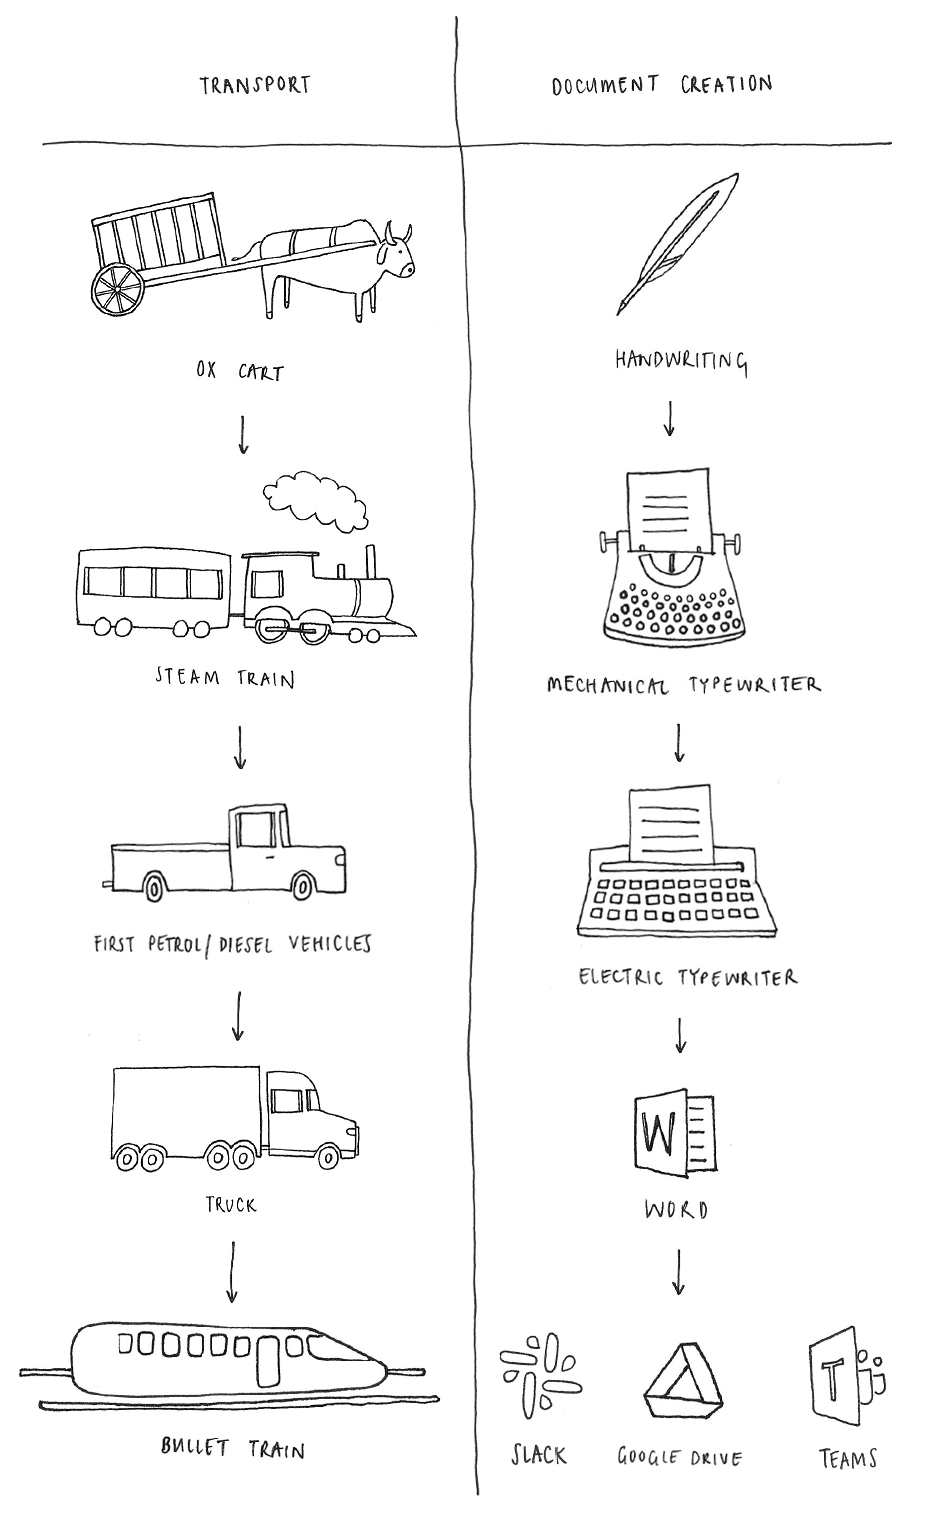 Hand-drawn illustration depicting two colums, with transport and document creation evolving in parallel: transport tracks an ox cart turning into a steam train, then a first petrol/diesel vehicle, a truck, a bullet train. Document creation tracks: handwriting turns into a mechanical typewriter, then an electric typewriter, Microsoft Word, then Slack, Google Drive, and Microsoft Teams.